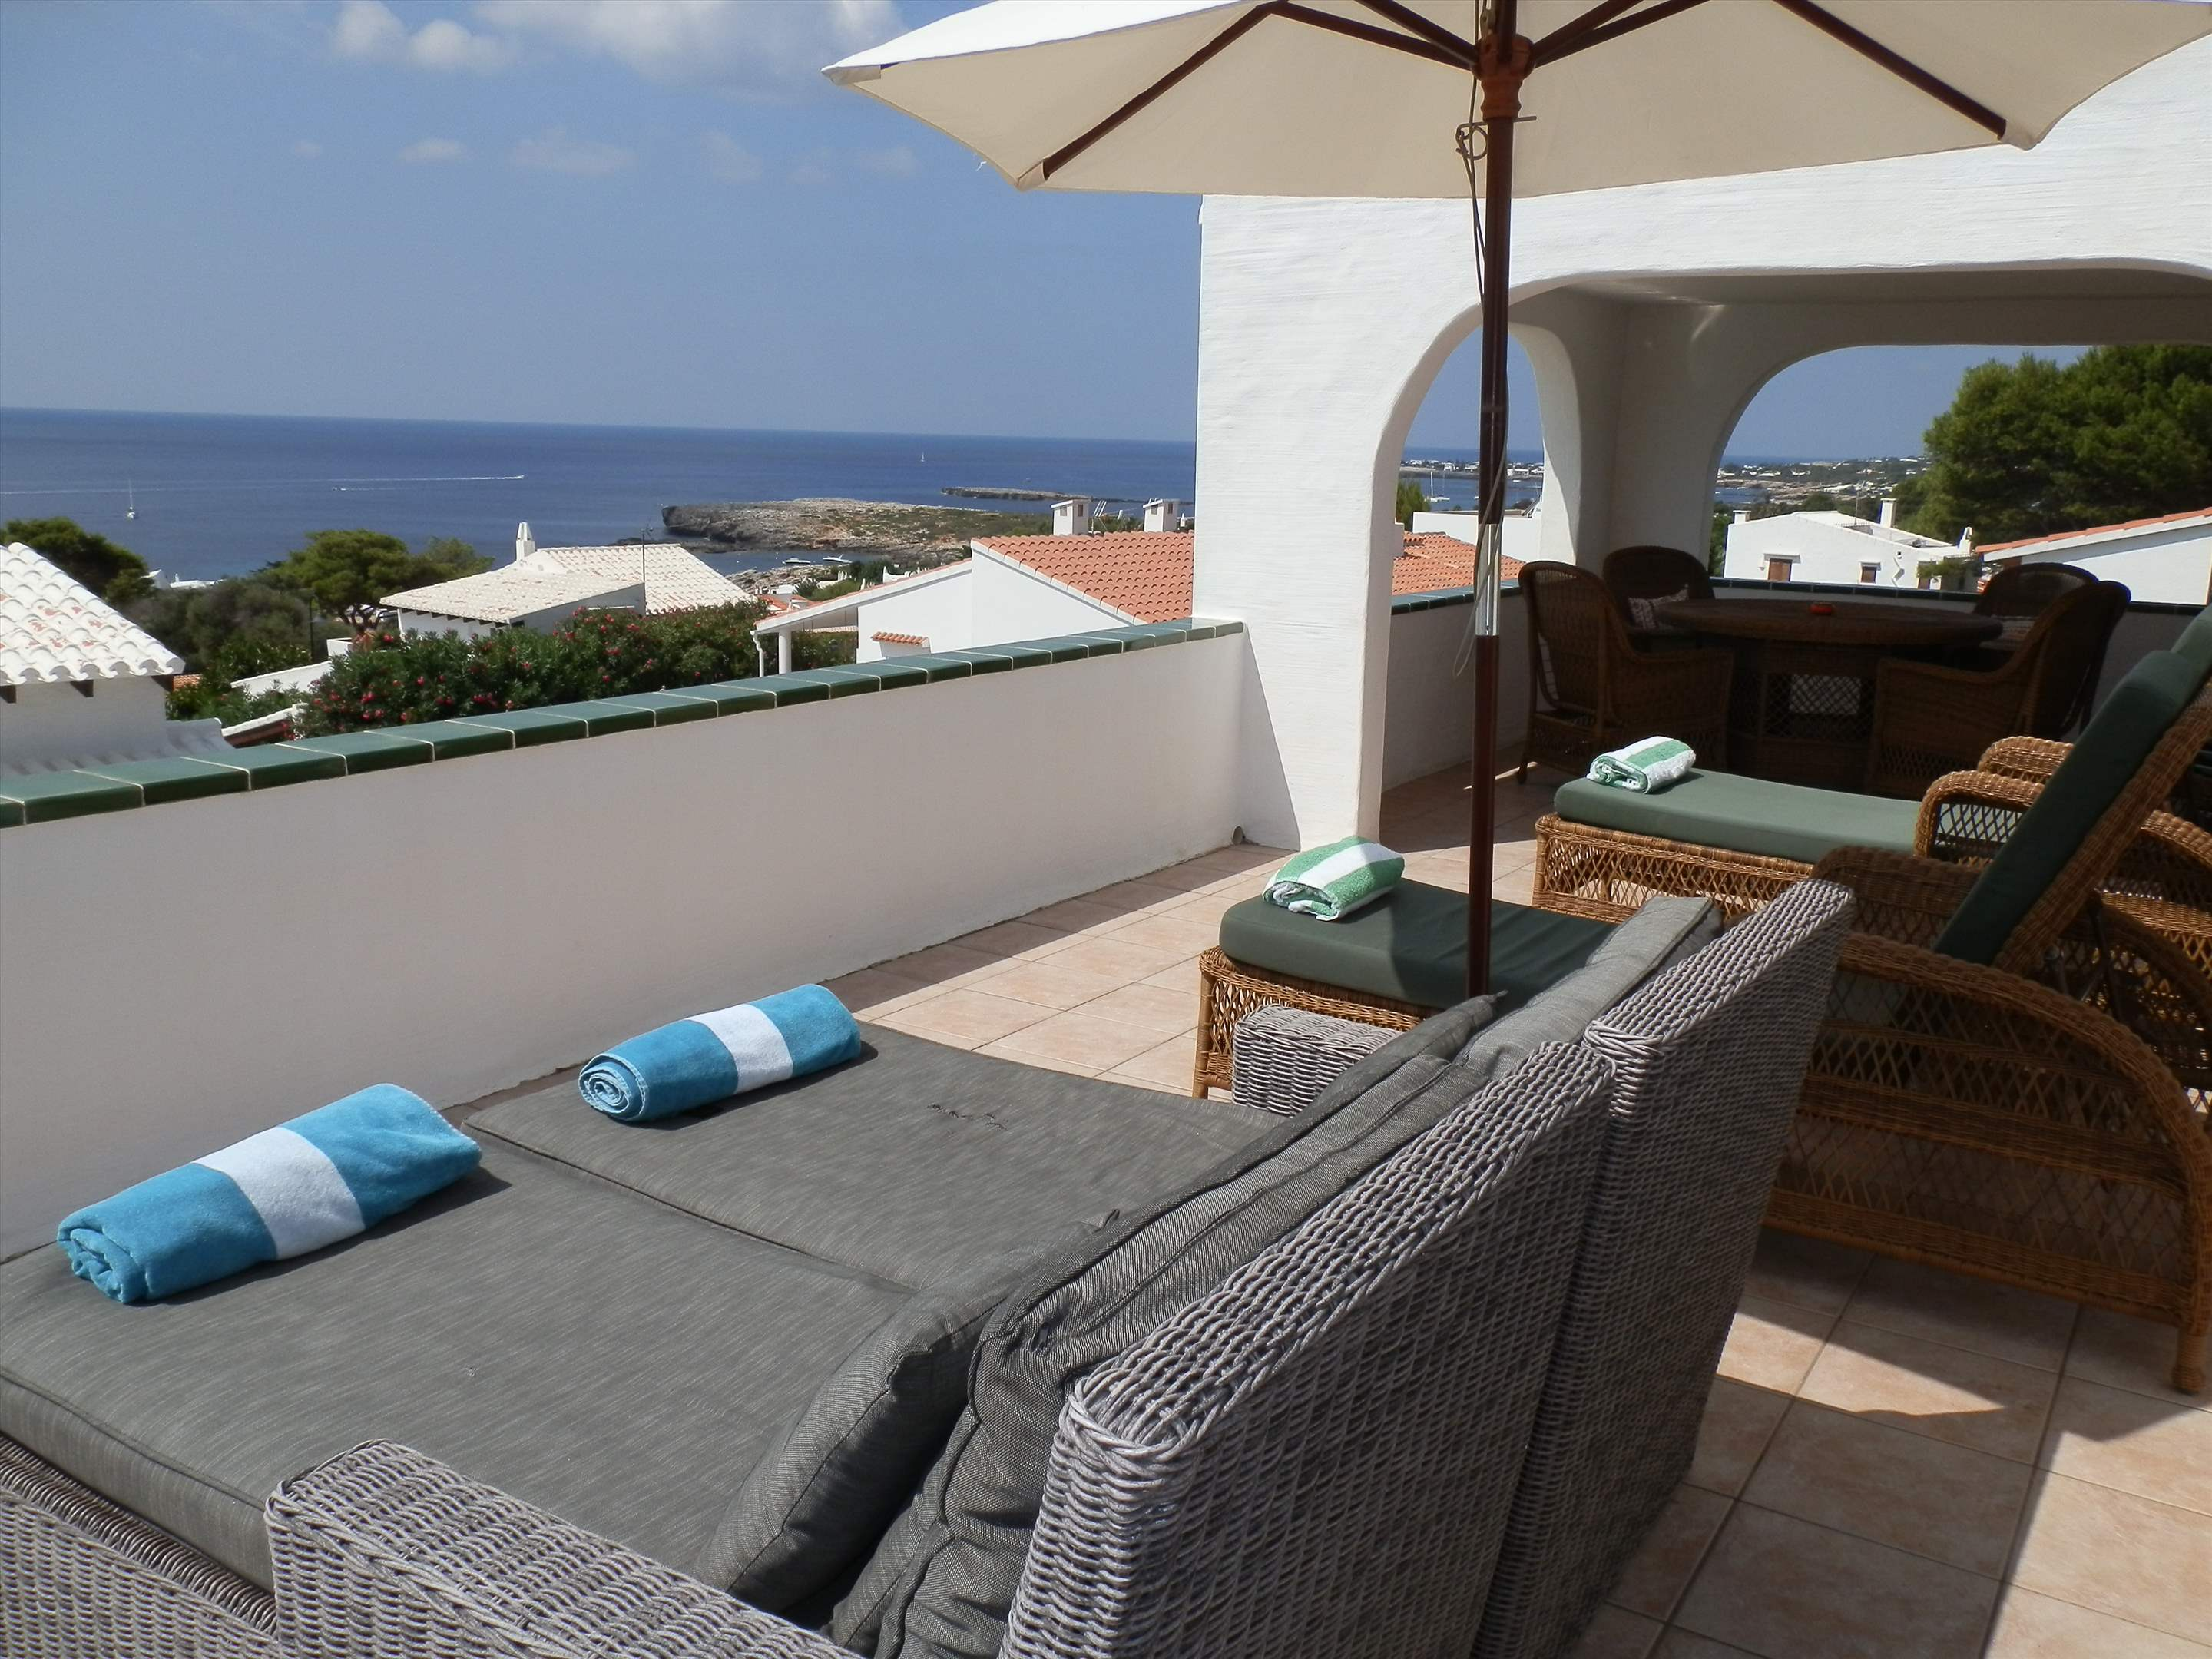 Villa La Palmera, 4 bedroom villa in Mahon, San Luis & South East, Menorca Photo #3